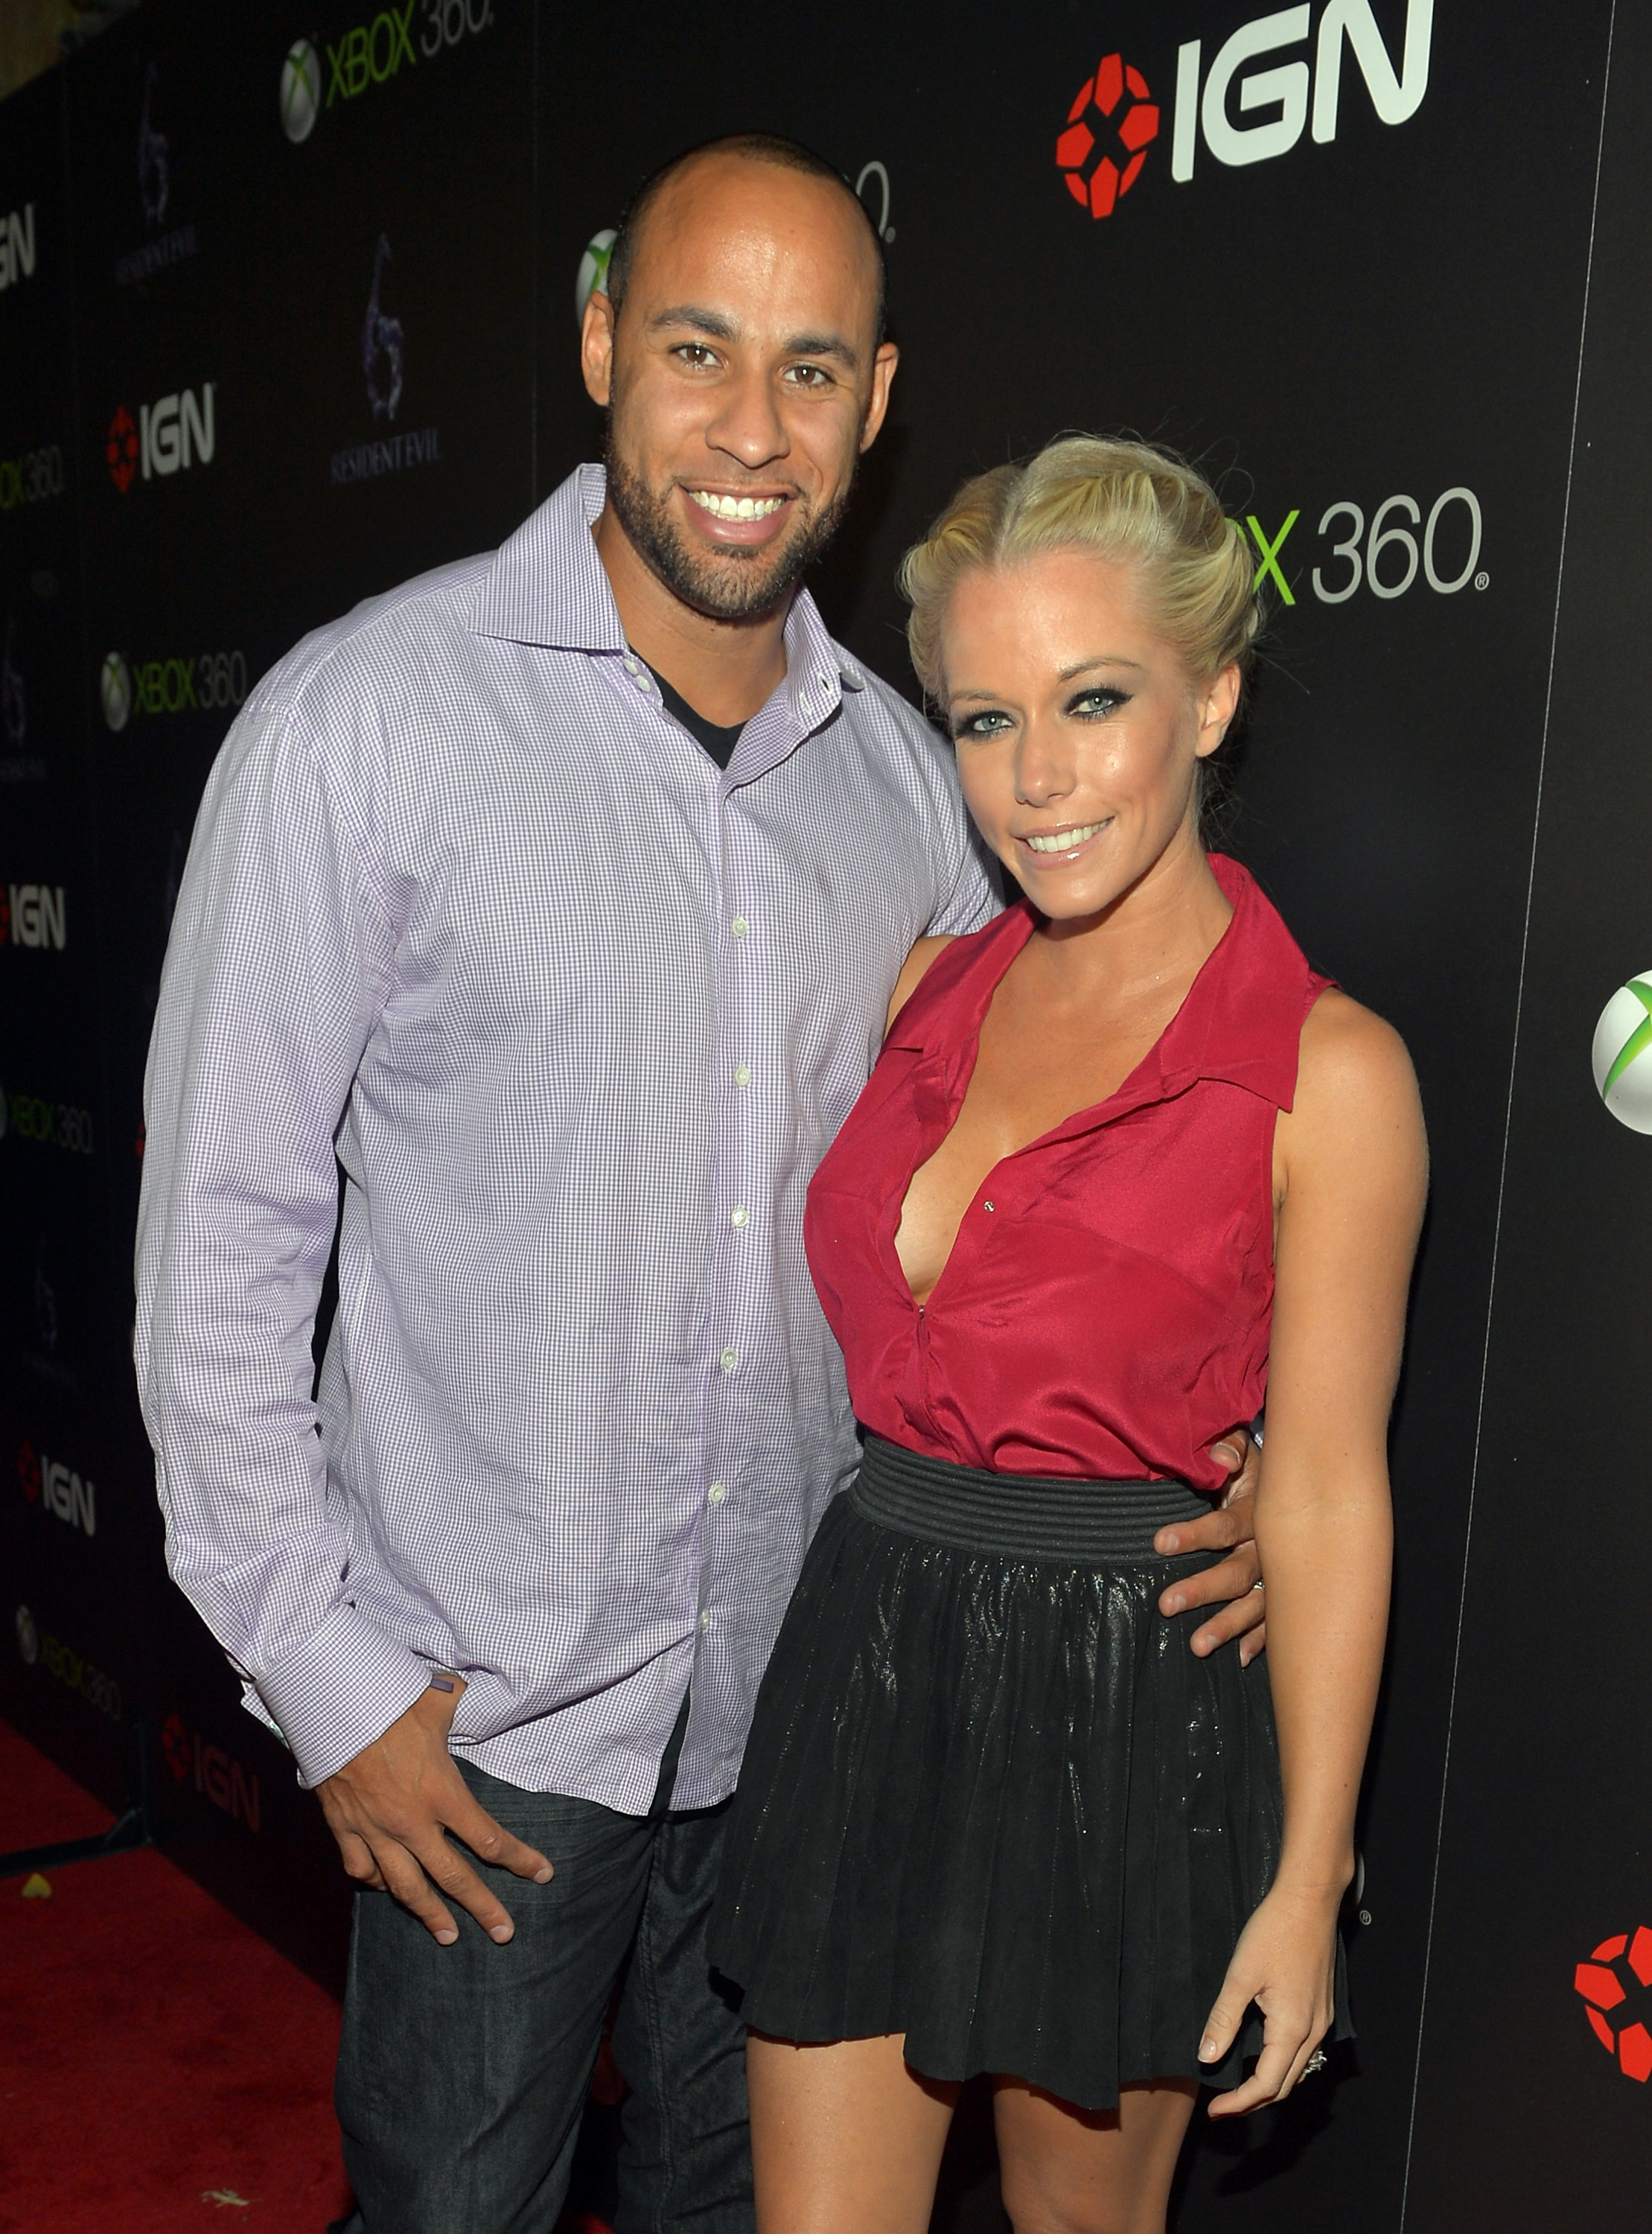 Hank Baskett and Kendra Wilkinson (WireImage)